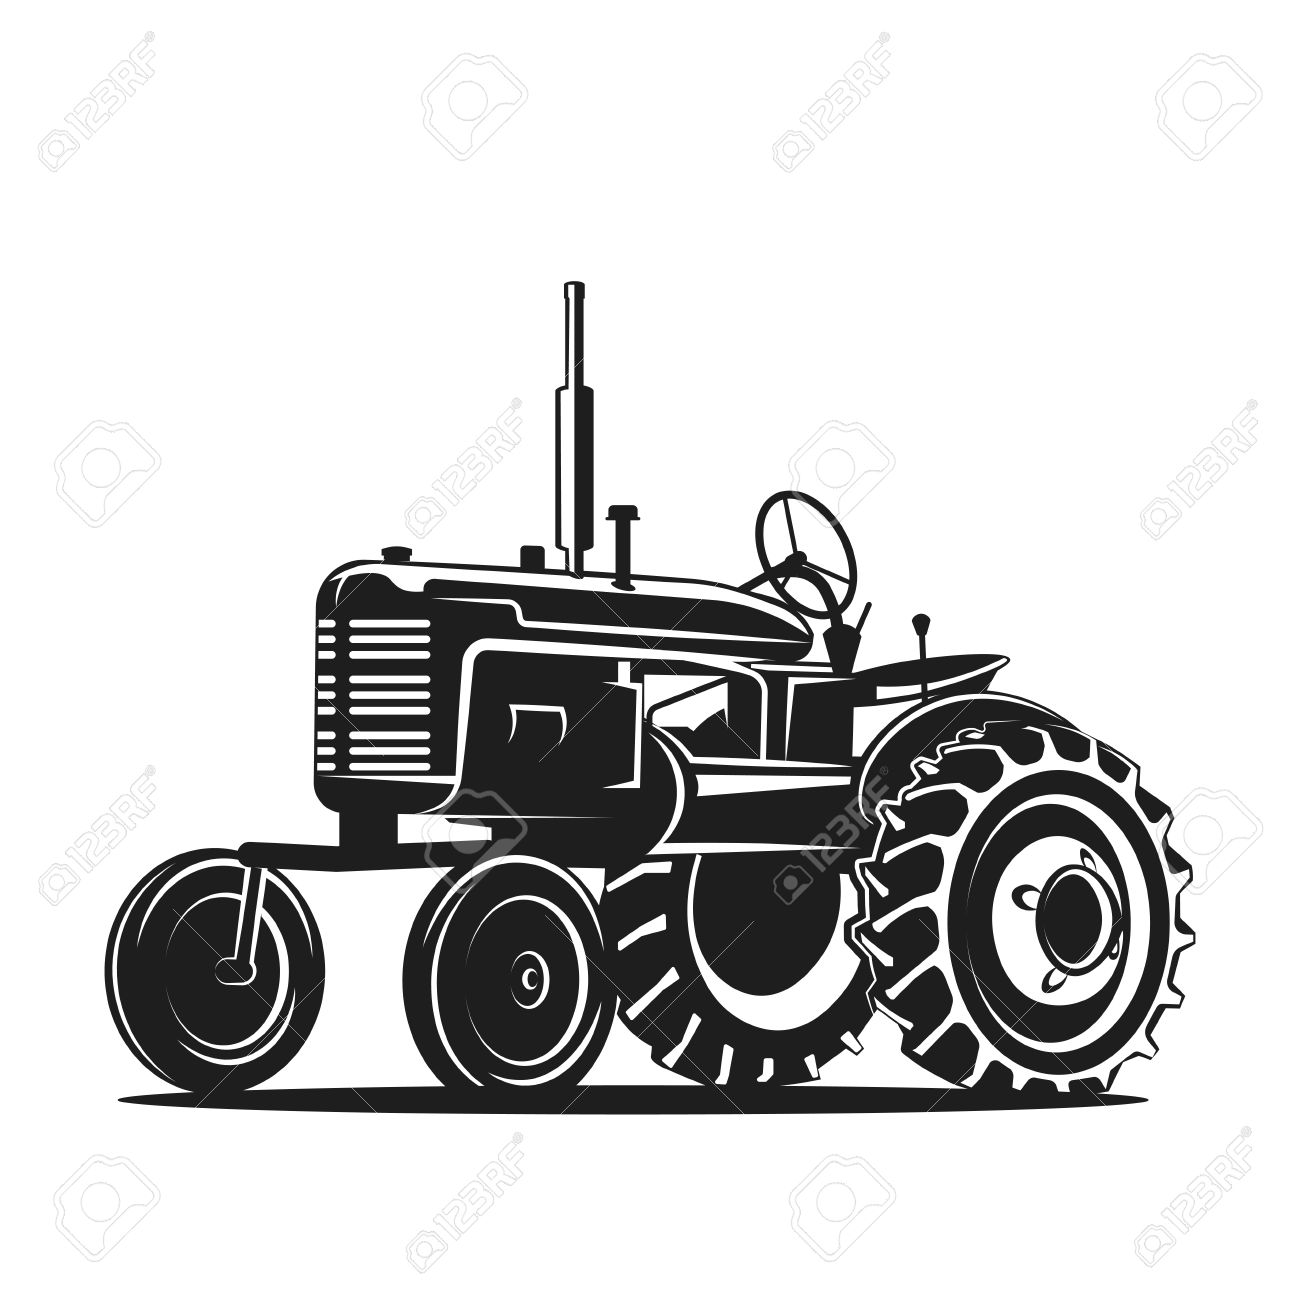 Black Old Tractor Silhouette On White Background Stock Vector